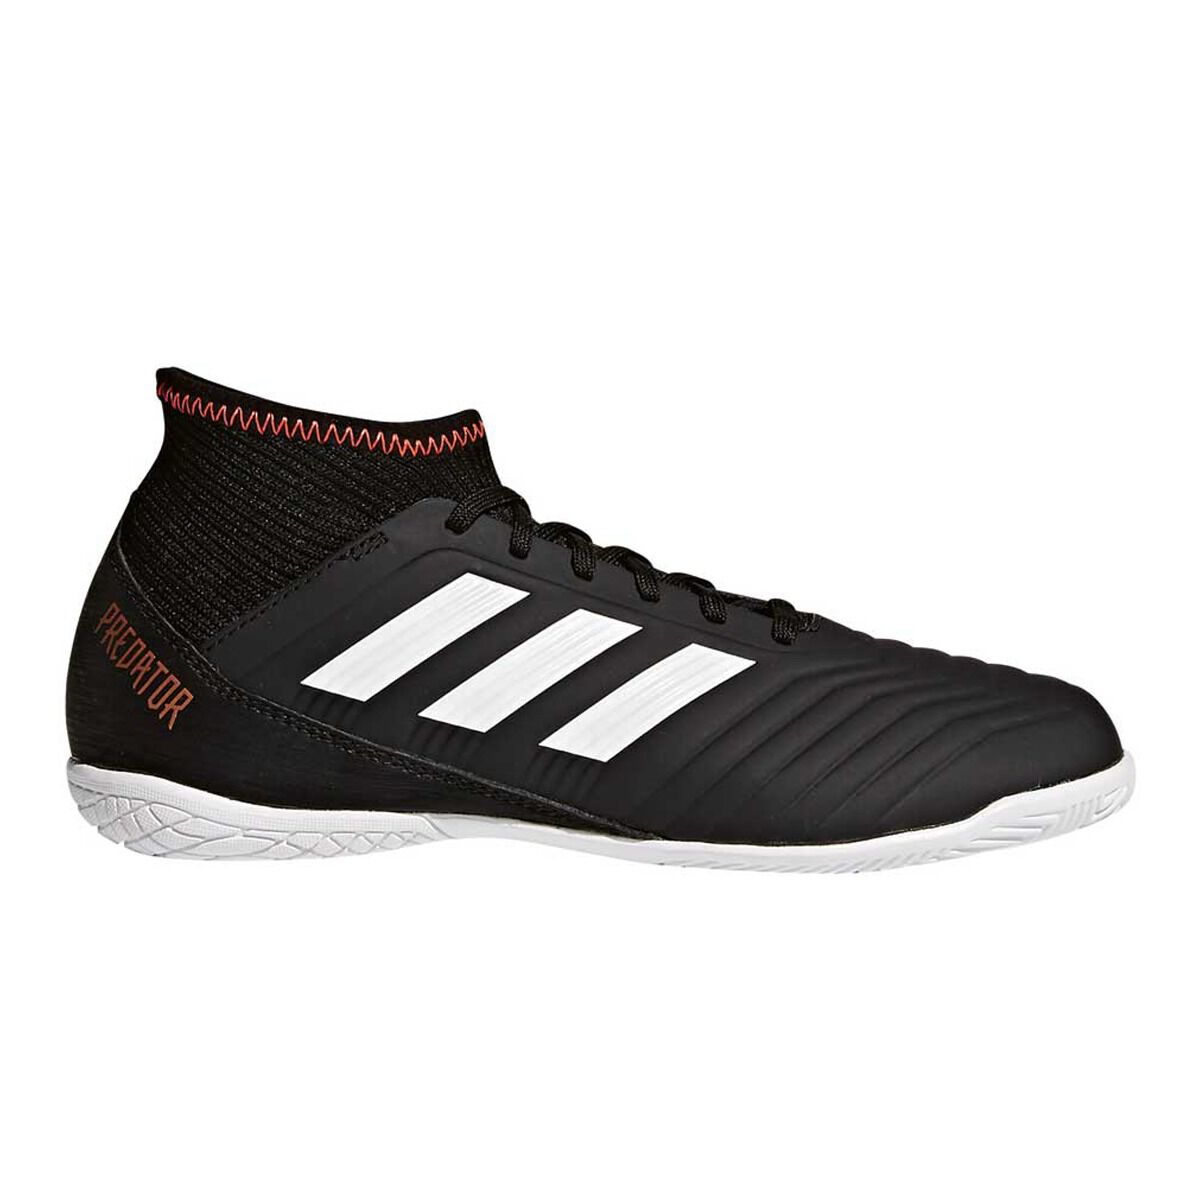 Indoor Adidas soccer shoes new photo